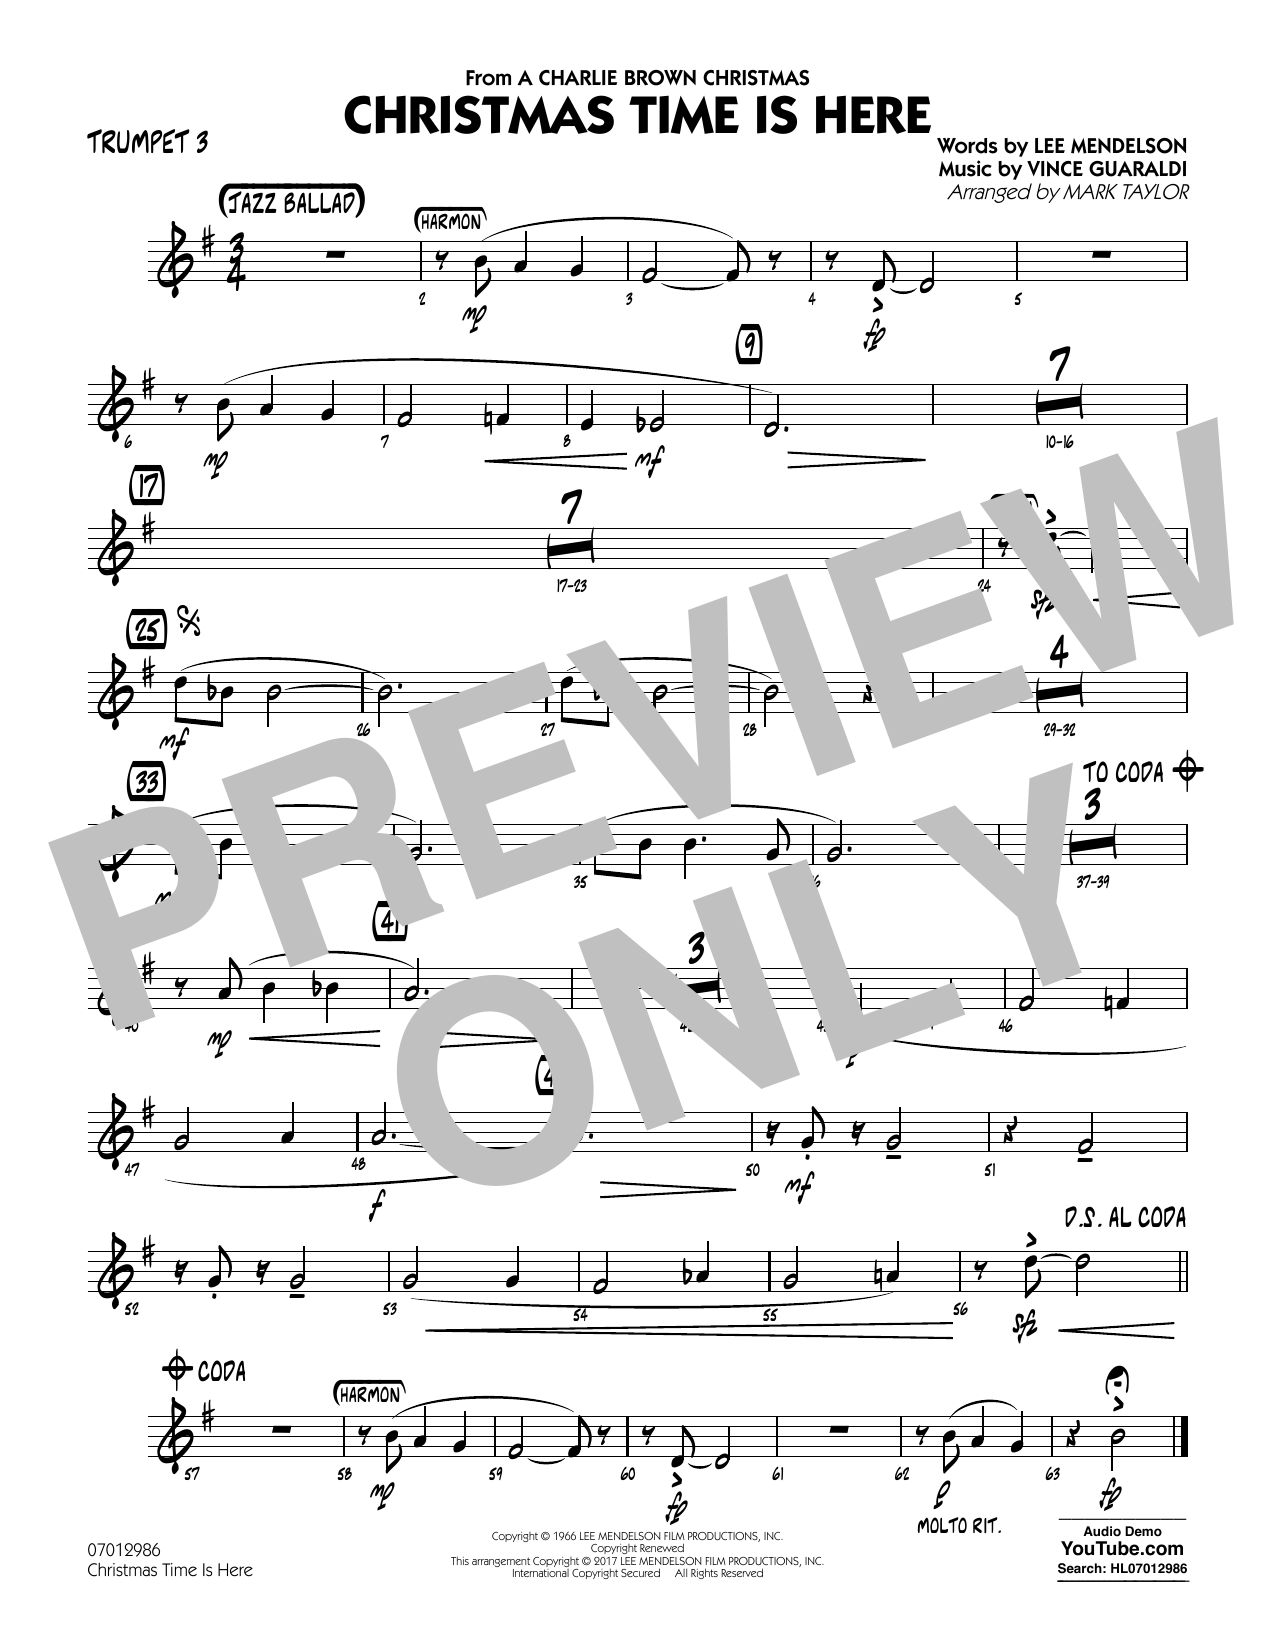 Christmas Time Is Here - Trumpet 3 Sheet Music